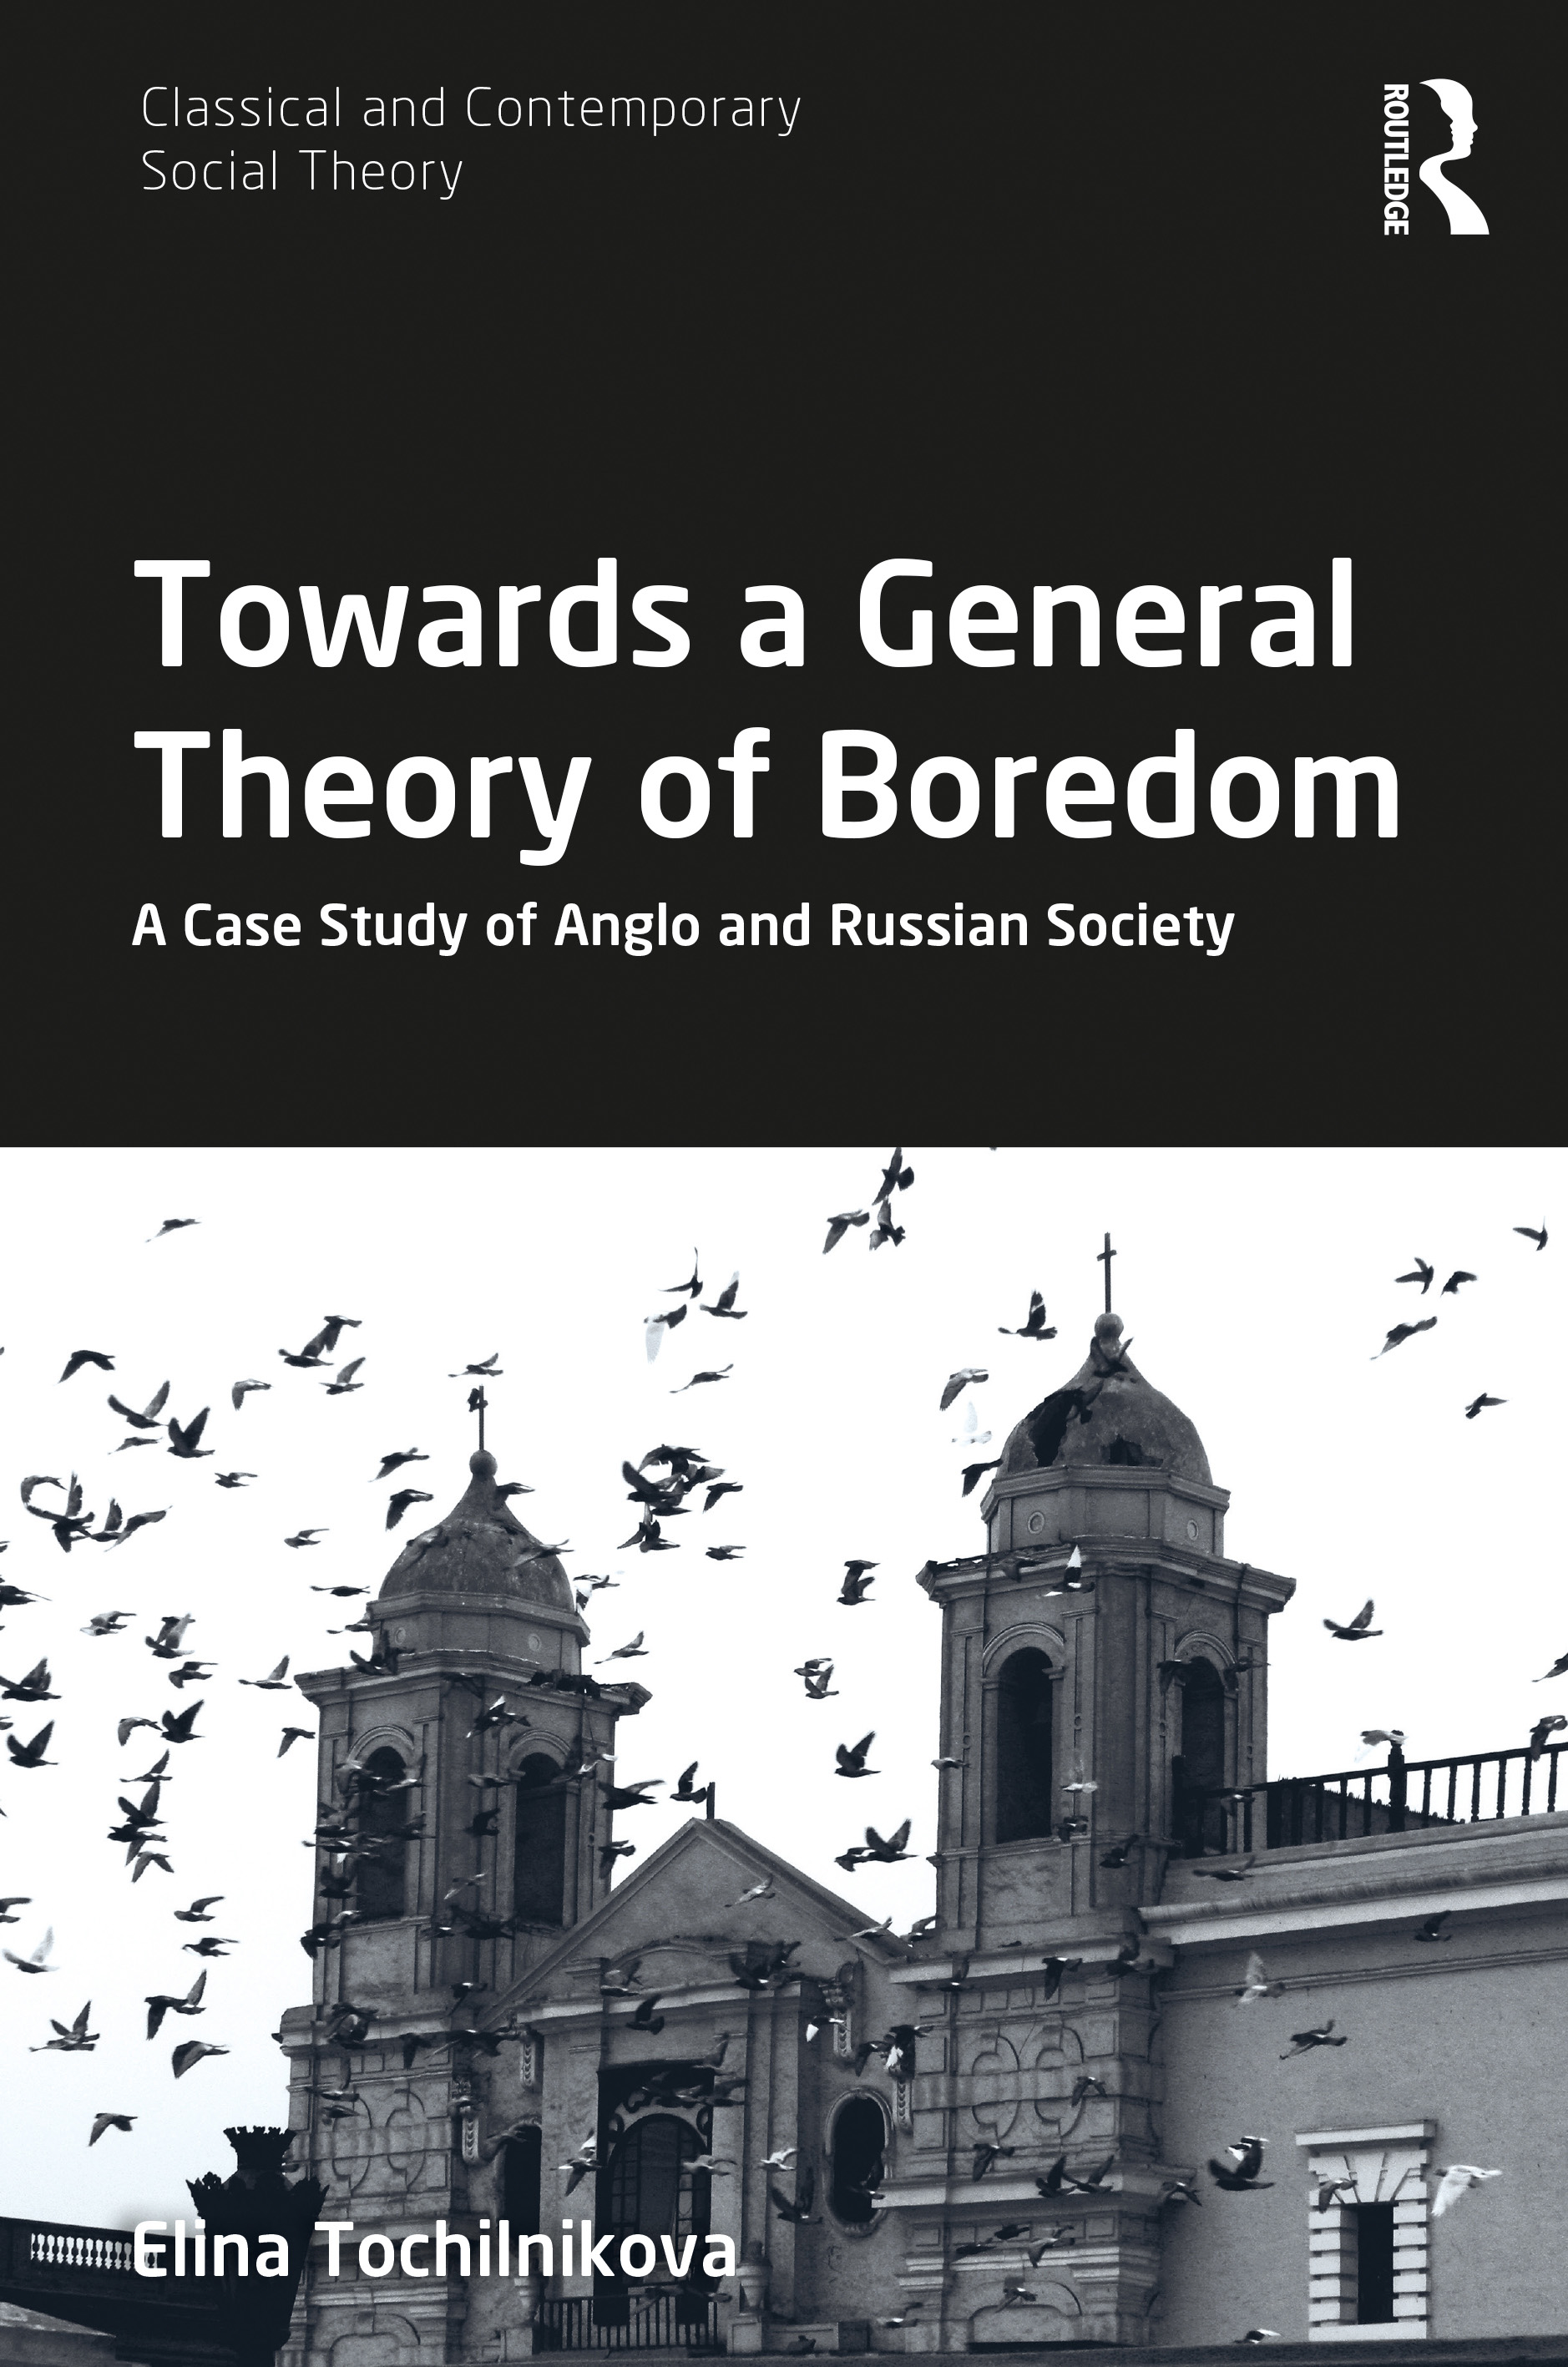 Towards a General Theory of Boredom